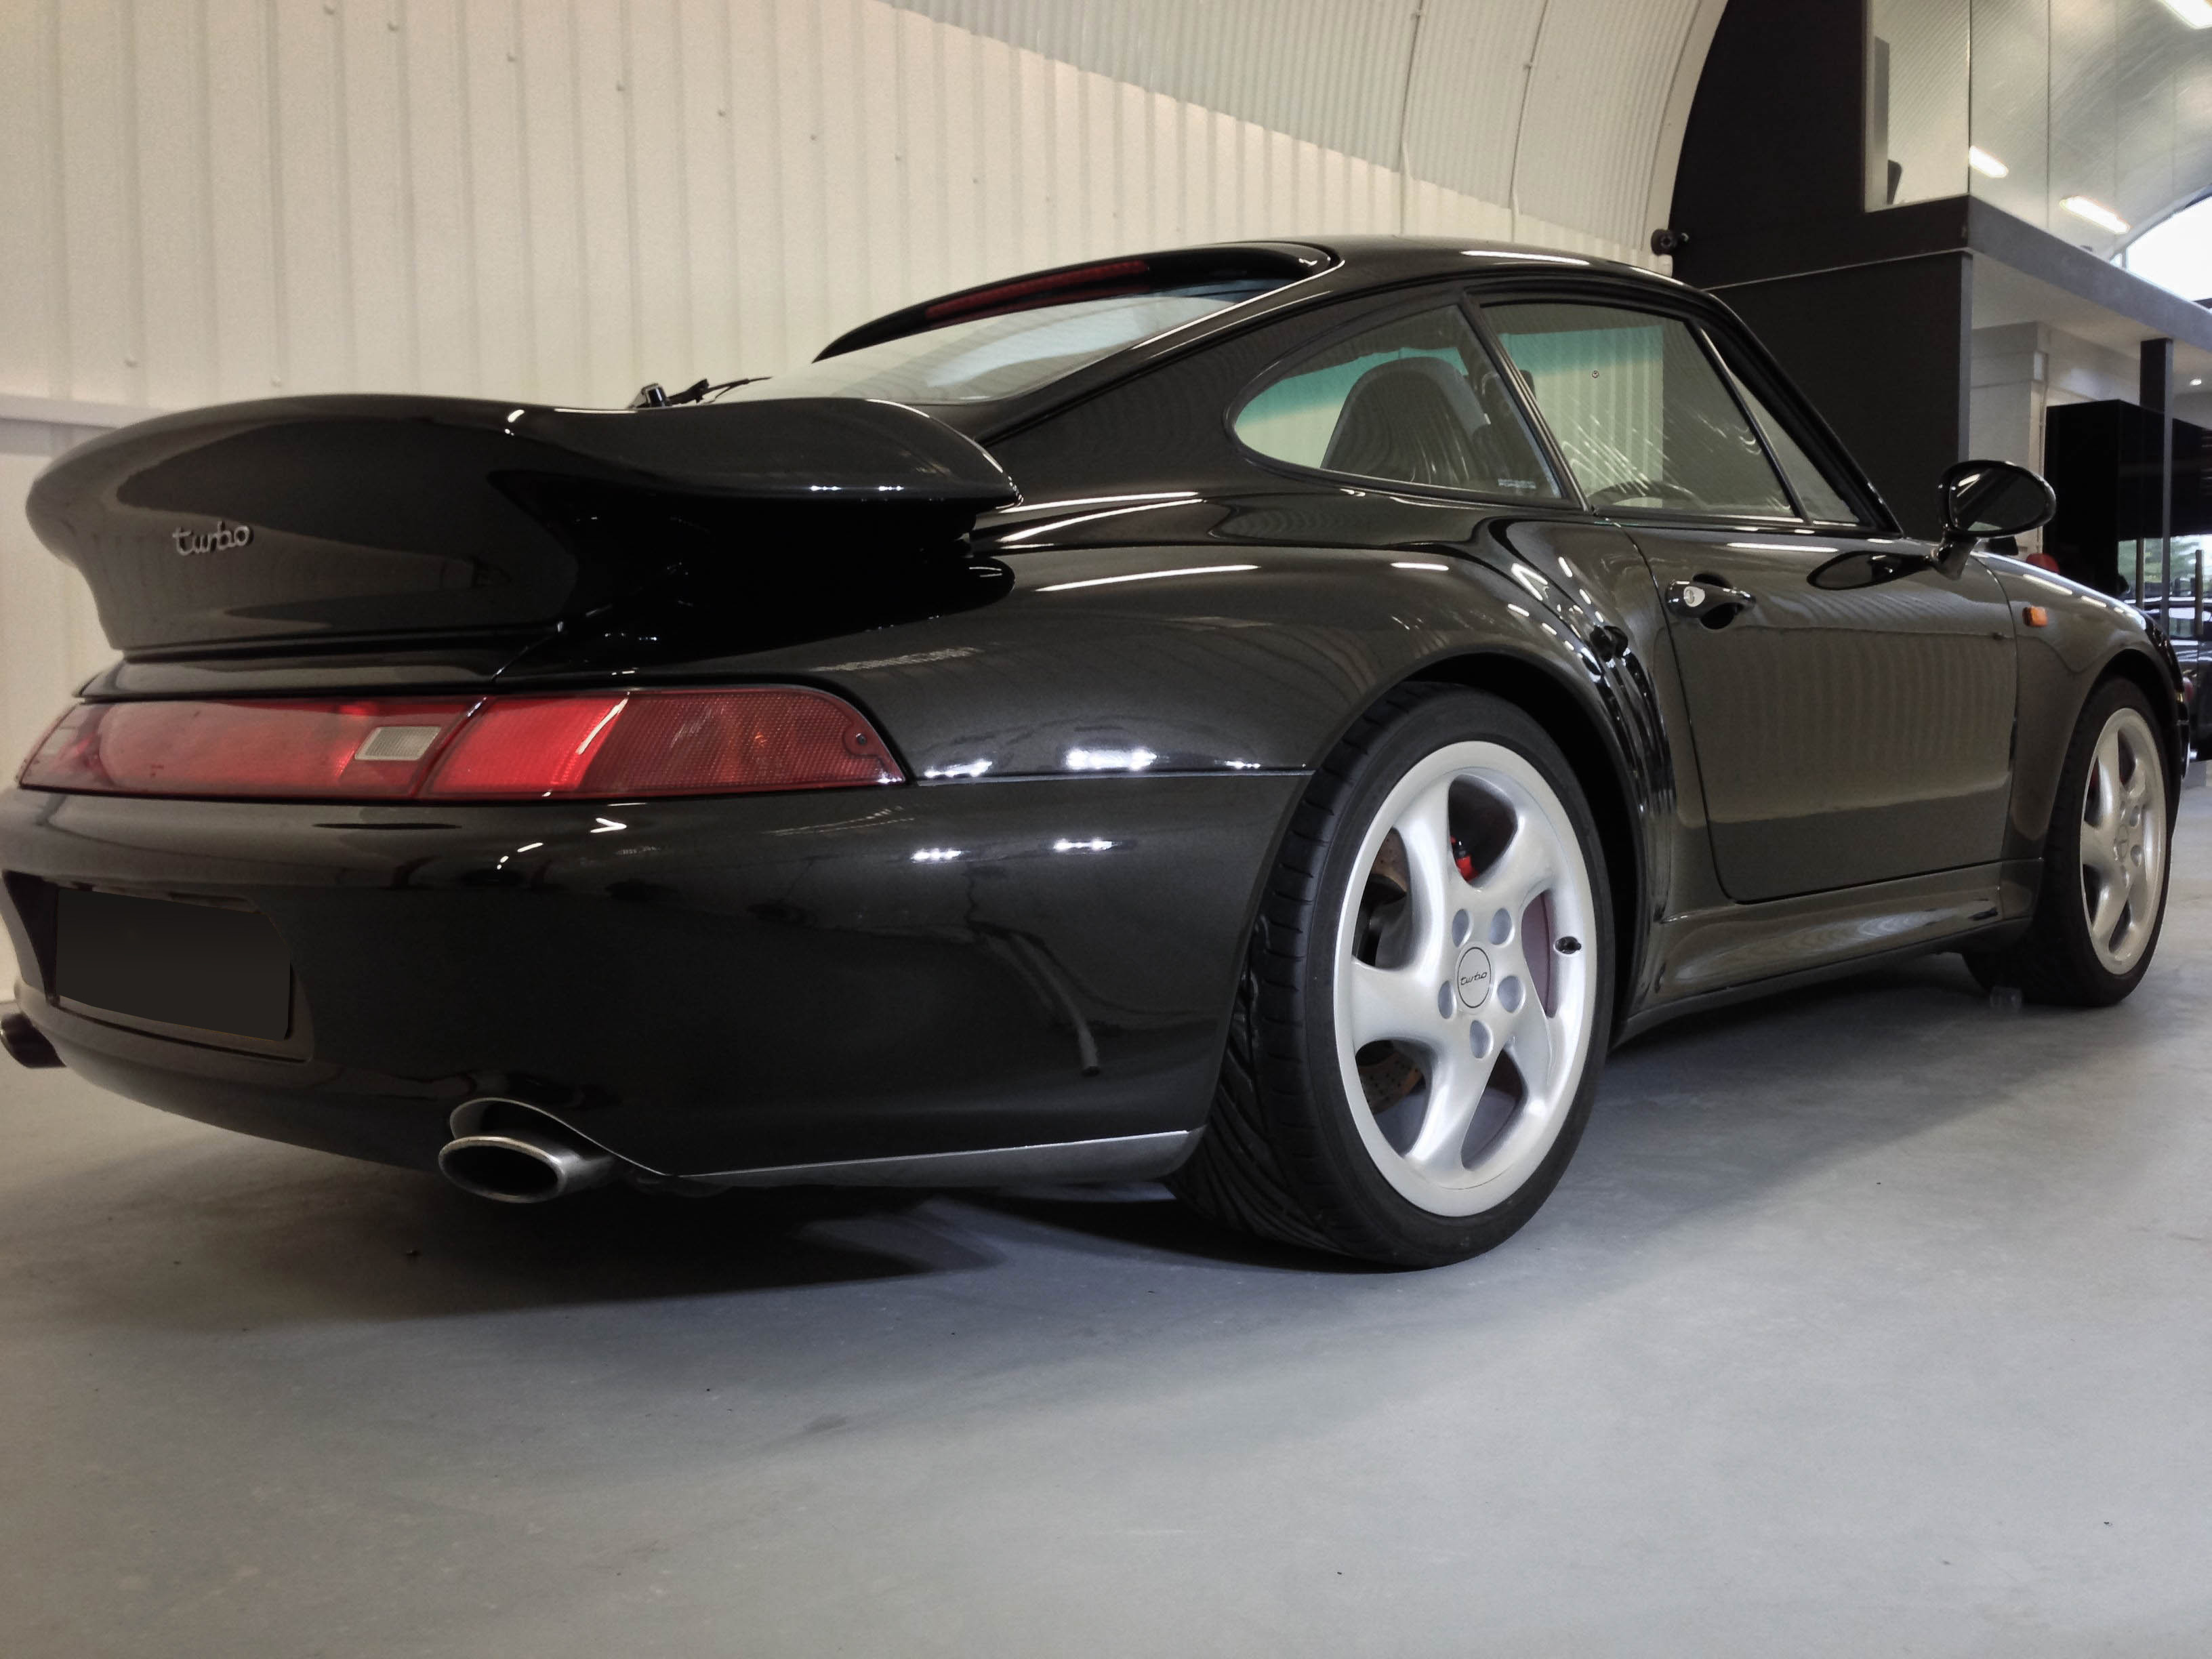 Porsche 911 Turbo – Rear